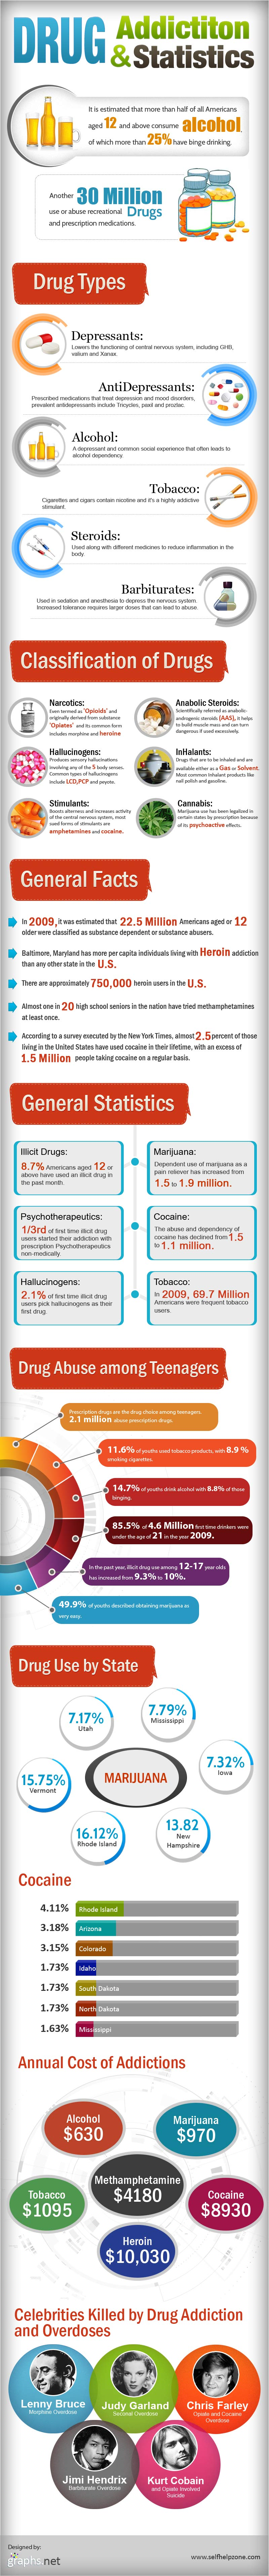 drug addiction facts